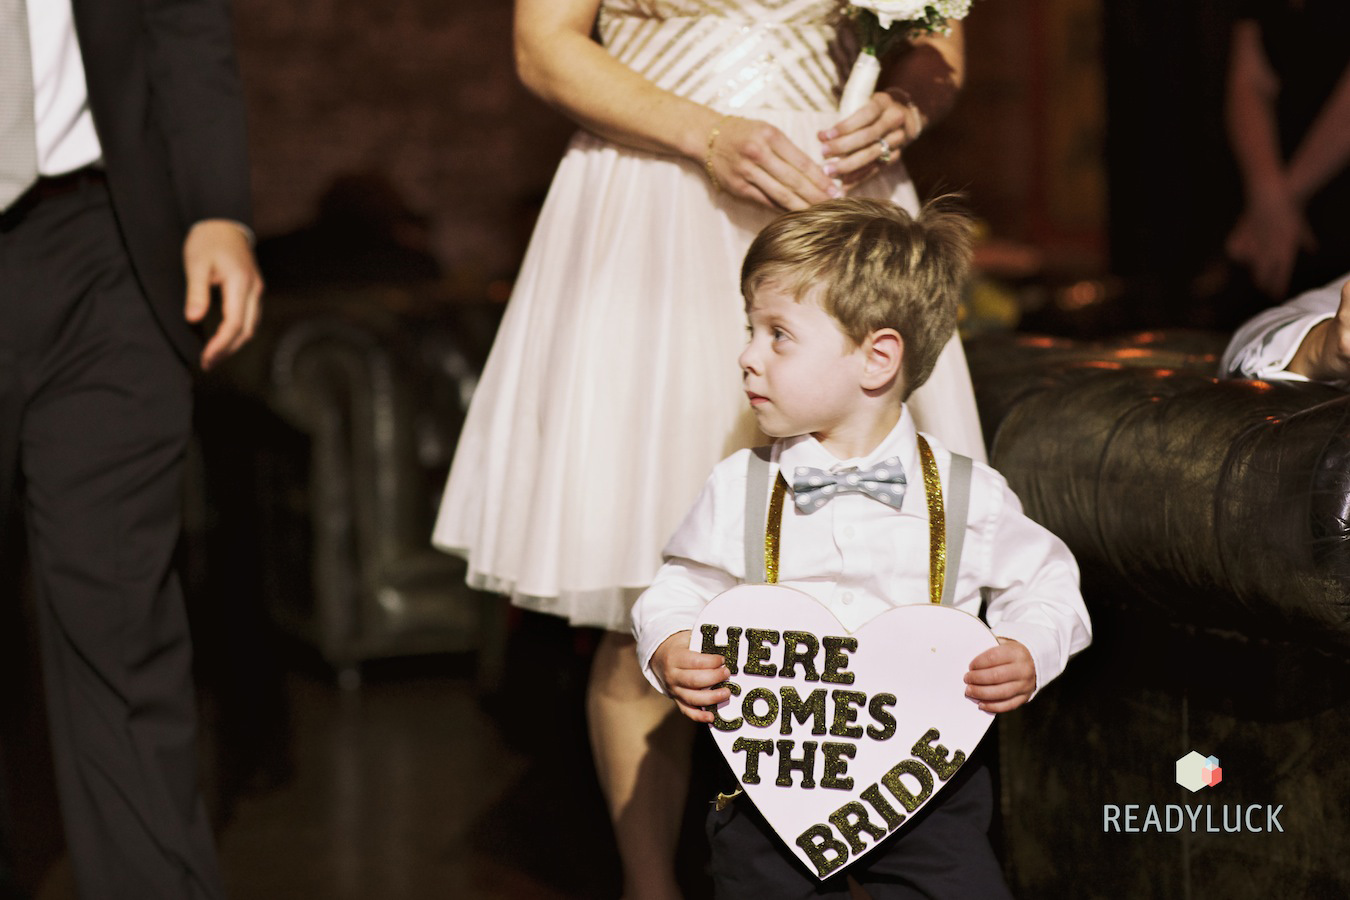 here-comes-the-bride-sign-wedding